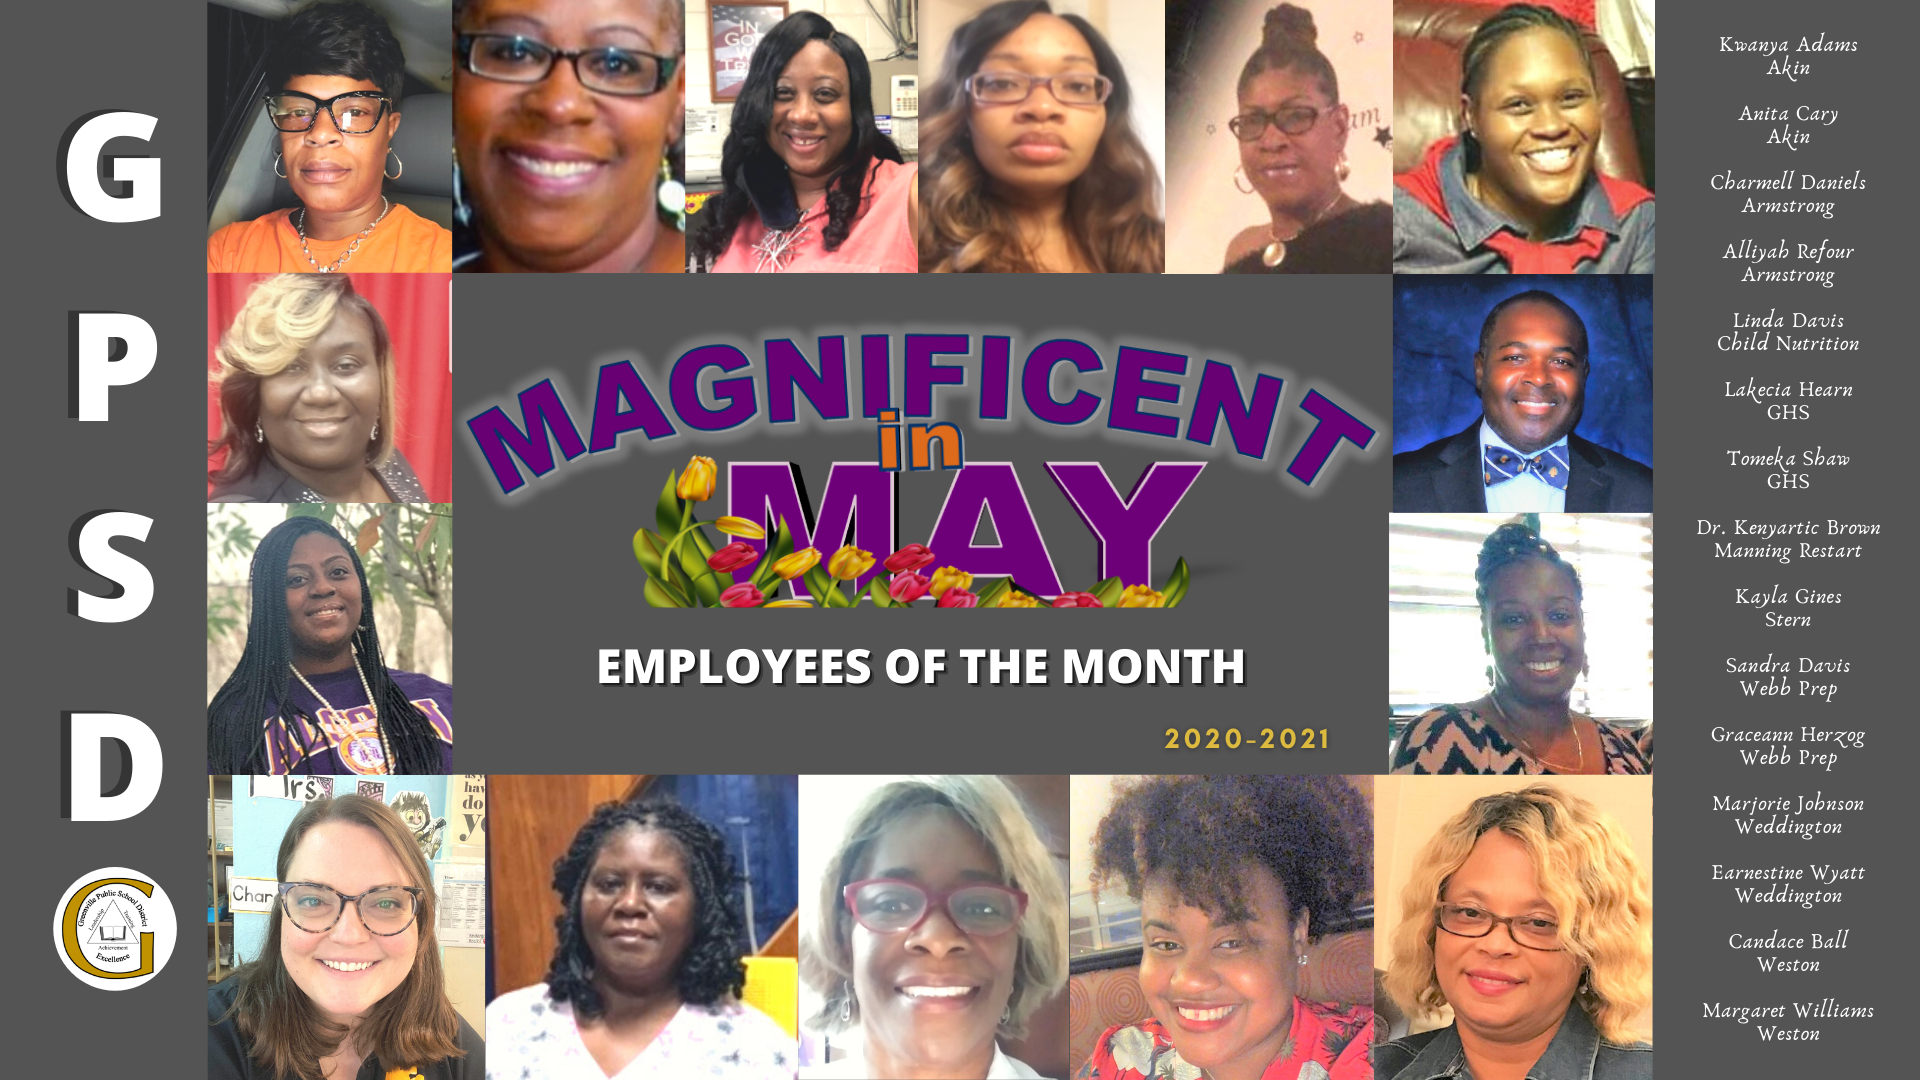 Employee of the Month - May